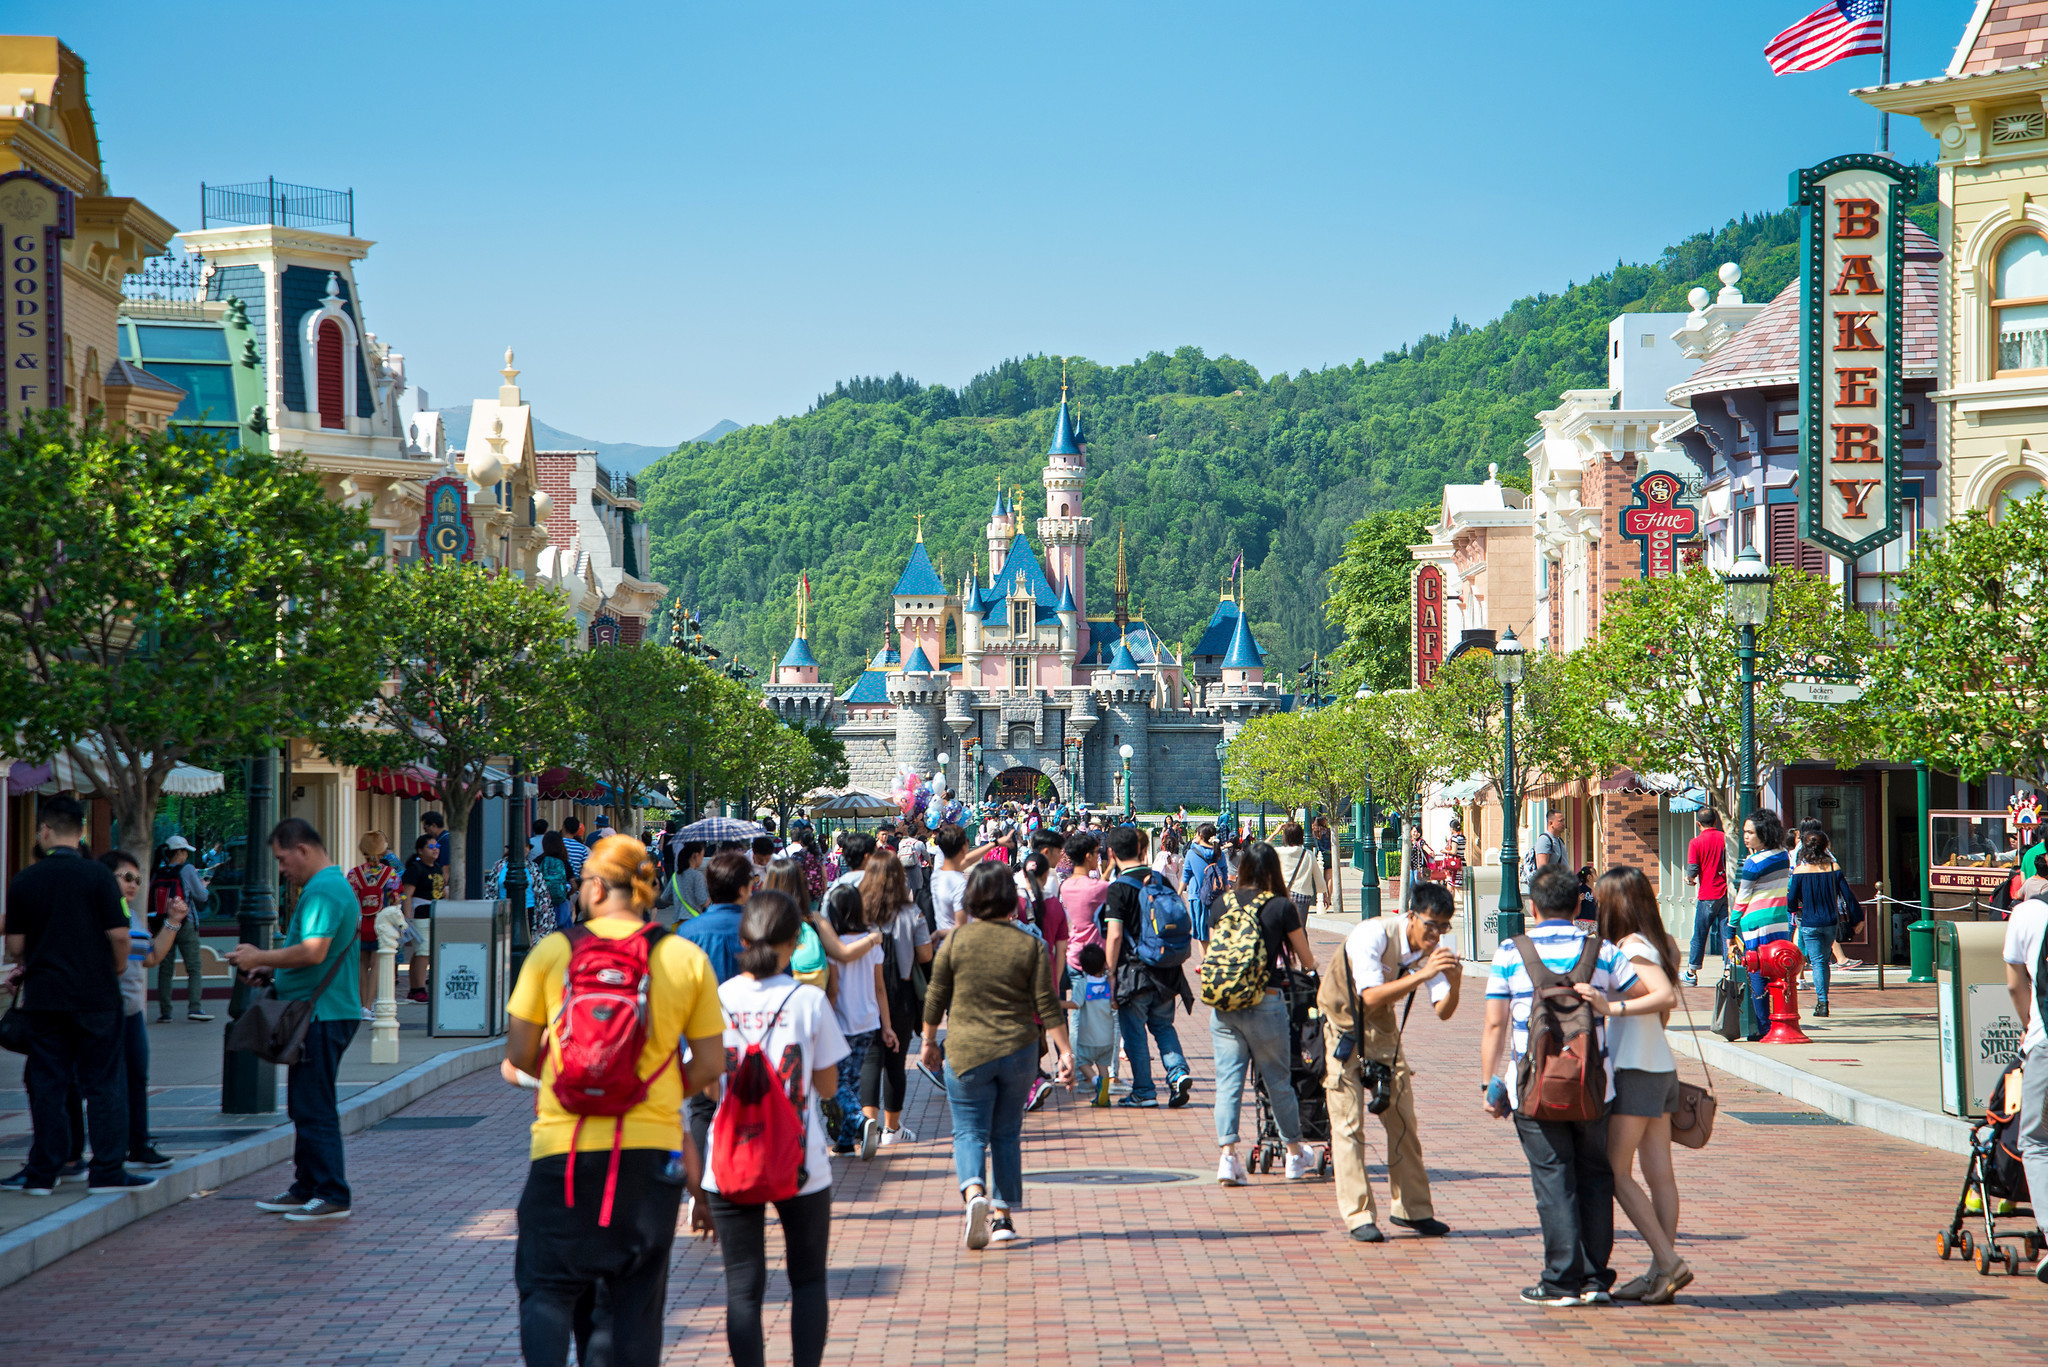 hong kong s disneyland An expansion of the sleeping beauty castle and a 'frozen'-themed land will be coming to the theme park, which is currently the smallest of disney's parks.